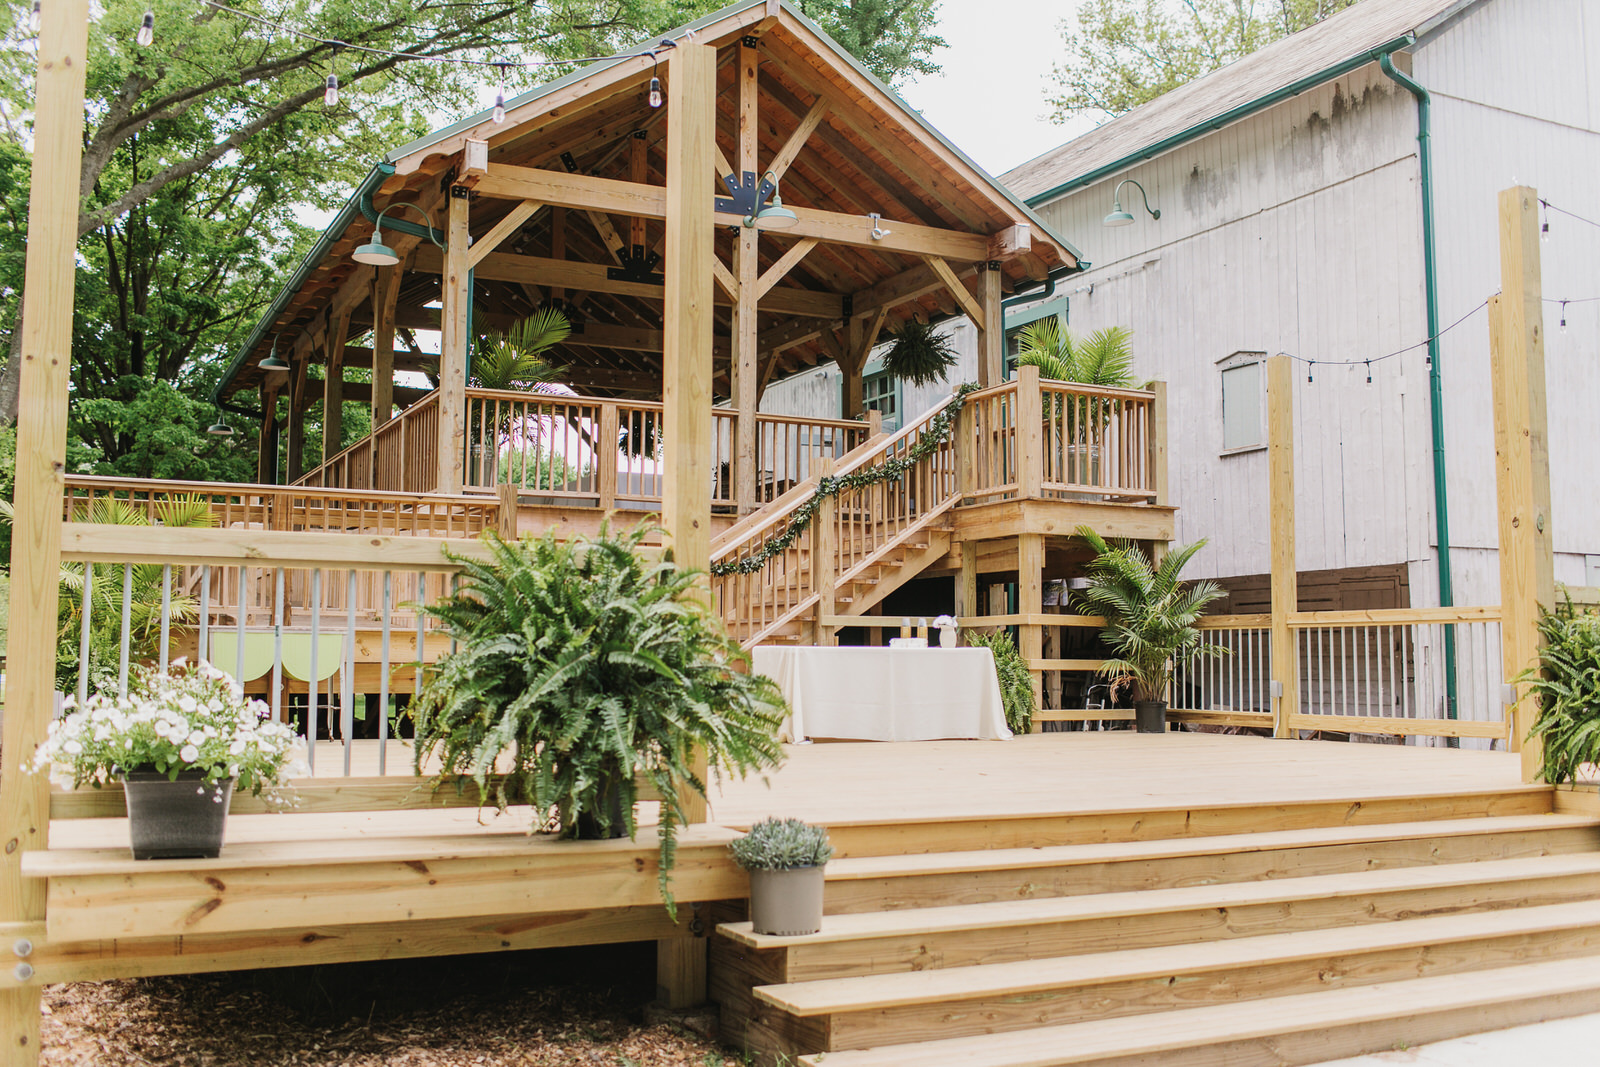 Covered Adjoining Deck - Perfect to take in the wooded views during cocktail hour, guest seating, set up your buffet or dance the night away! The covered deck also is a great option for an alternative ceremony site in case of rain.